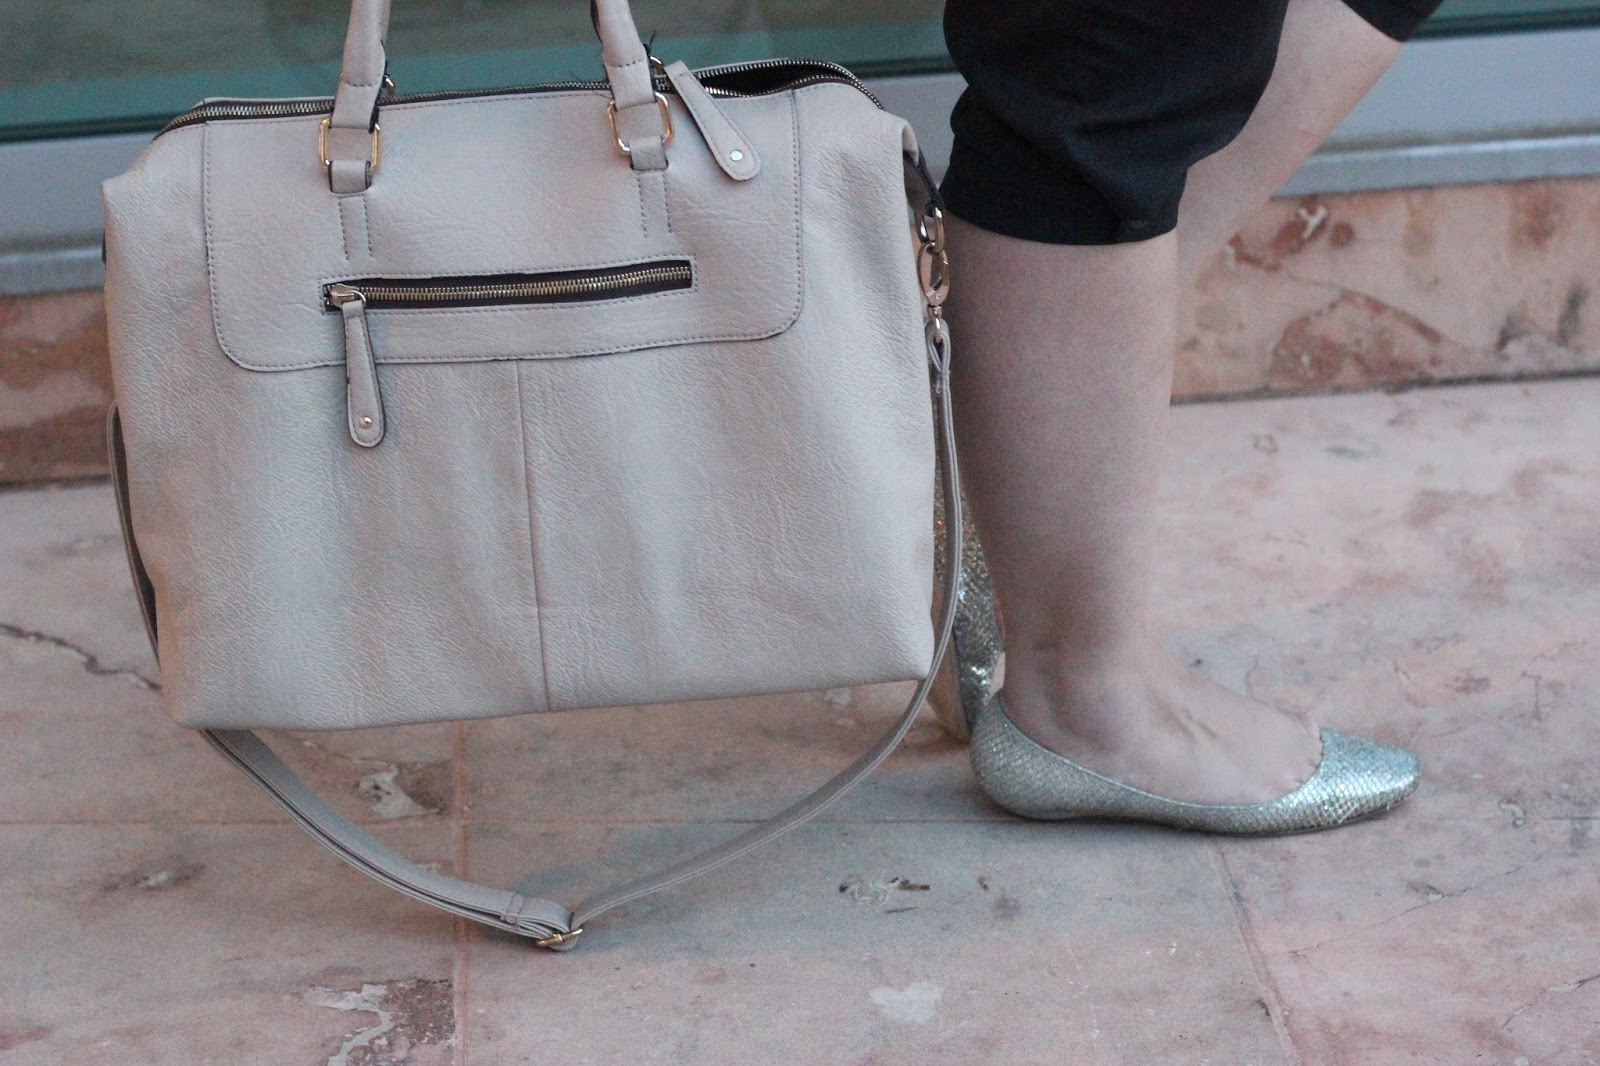 Nude Satchel and Jimmy Choo Flats